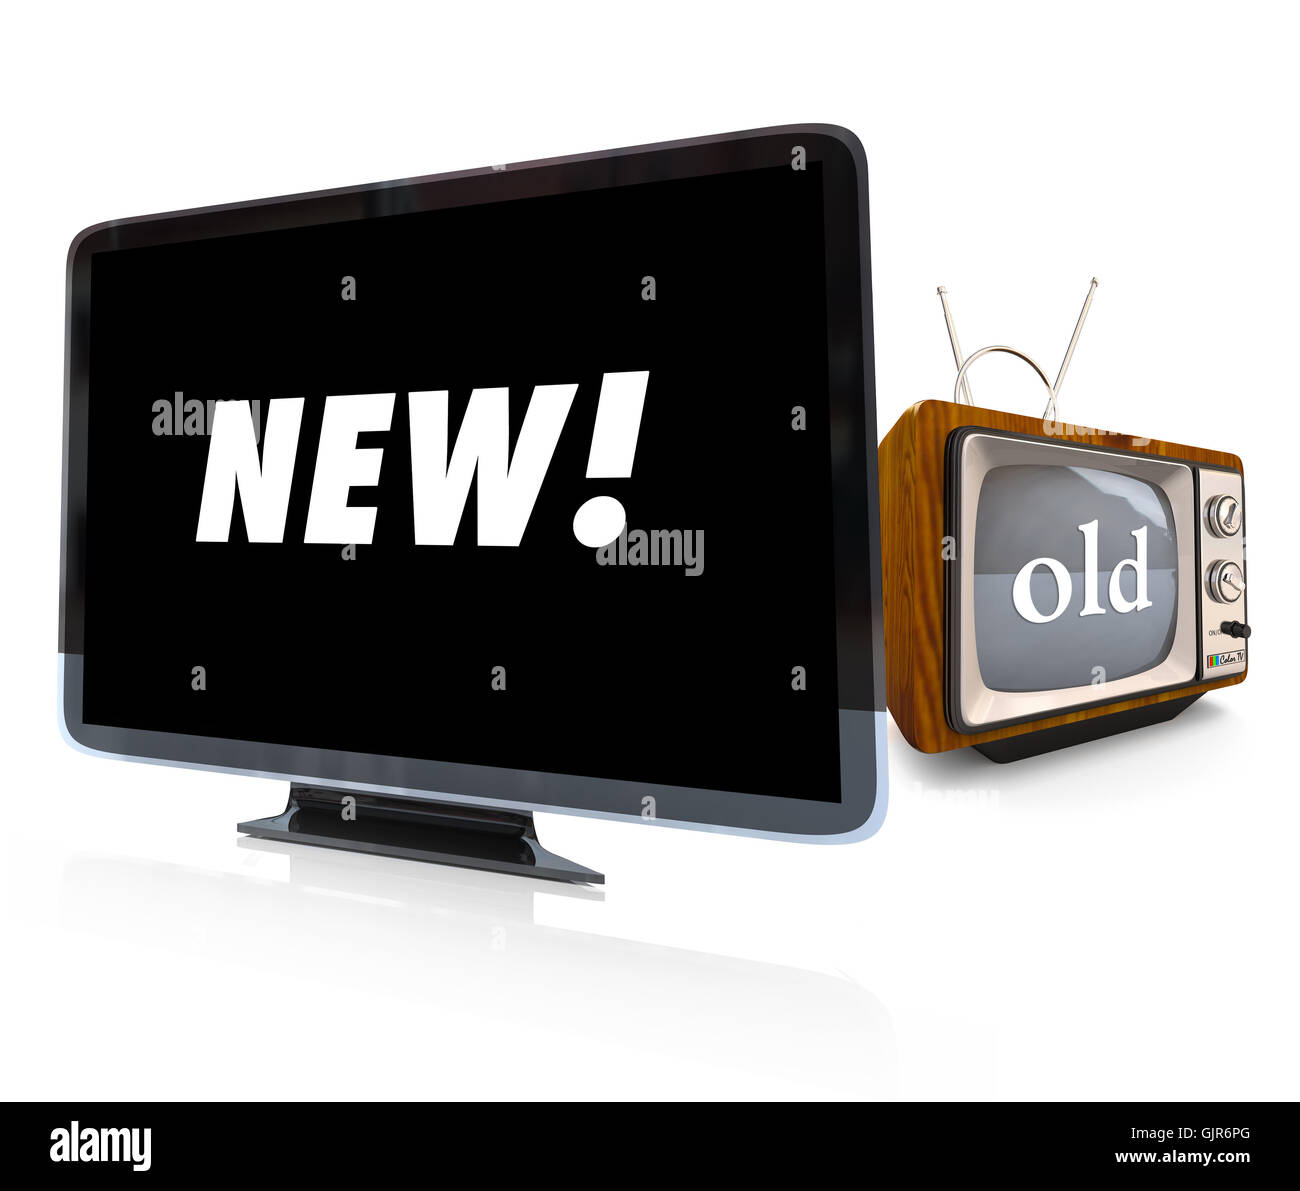 Comparing Old CRT TV vs new HDTV Television - Stock Image